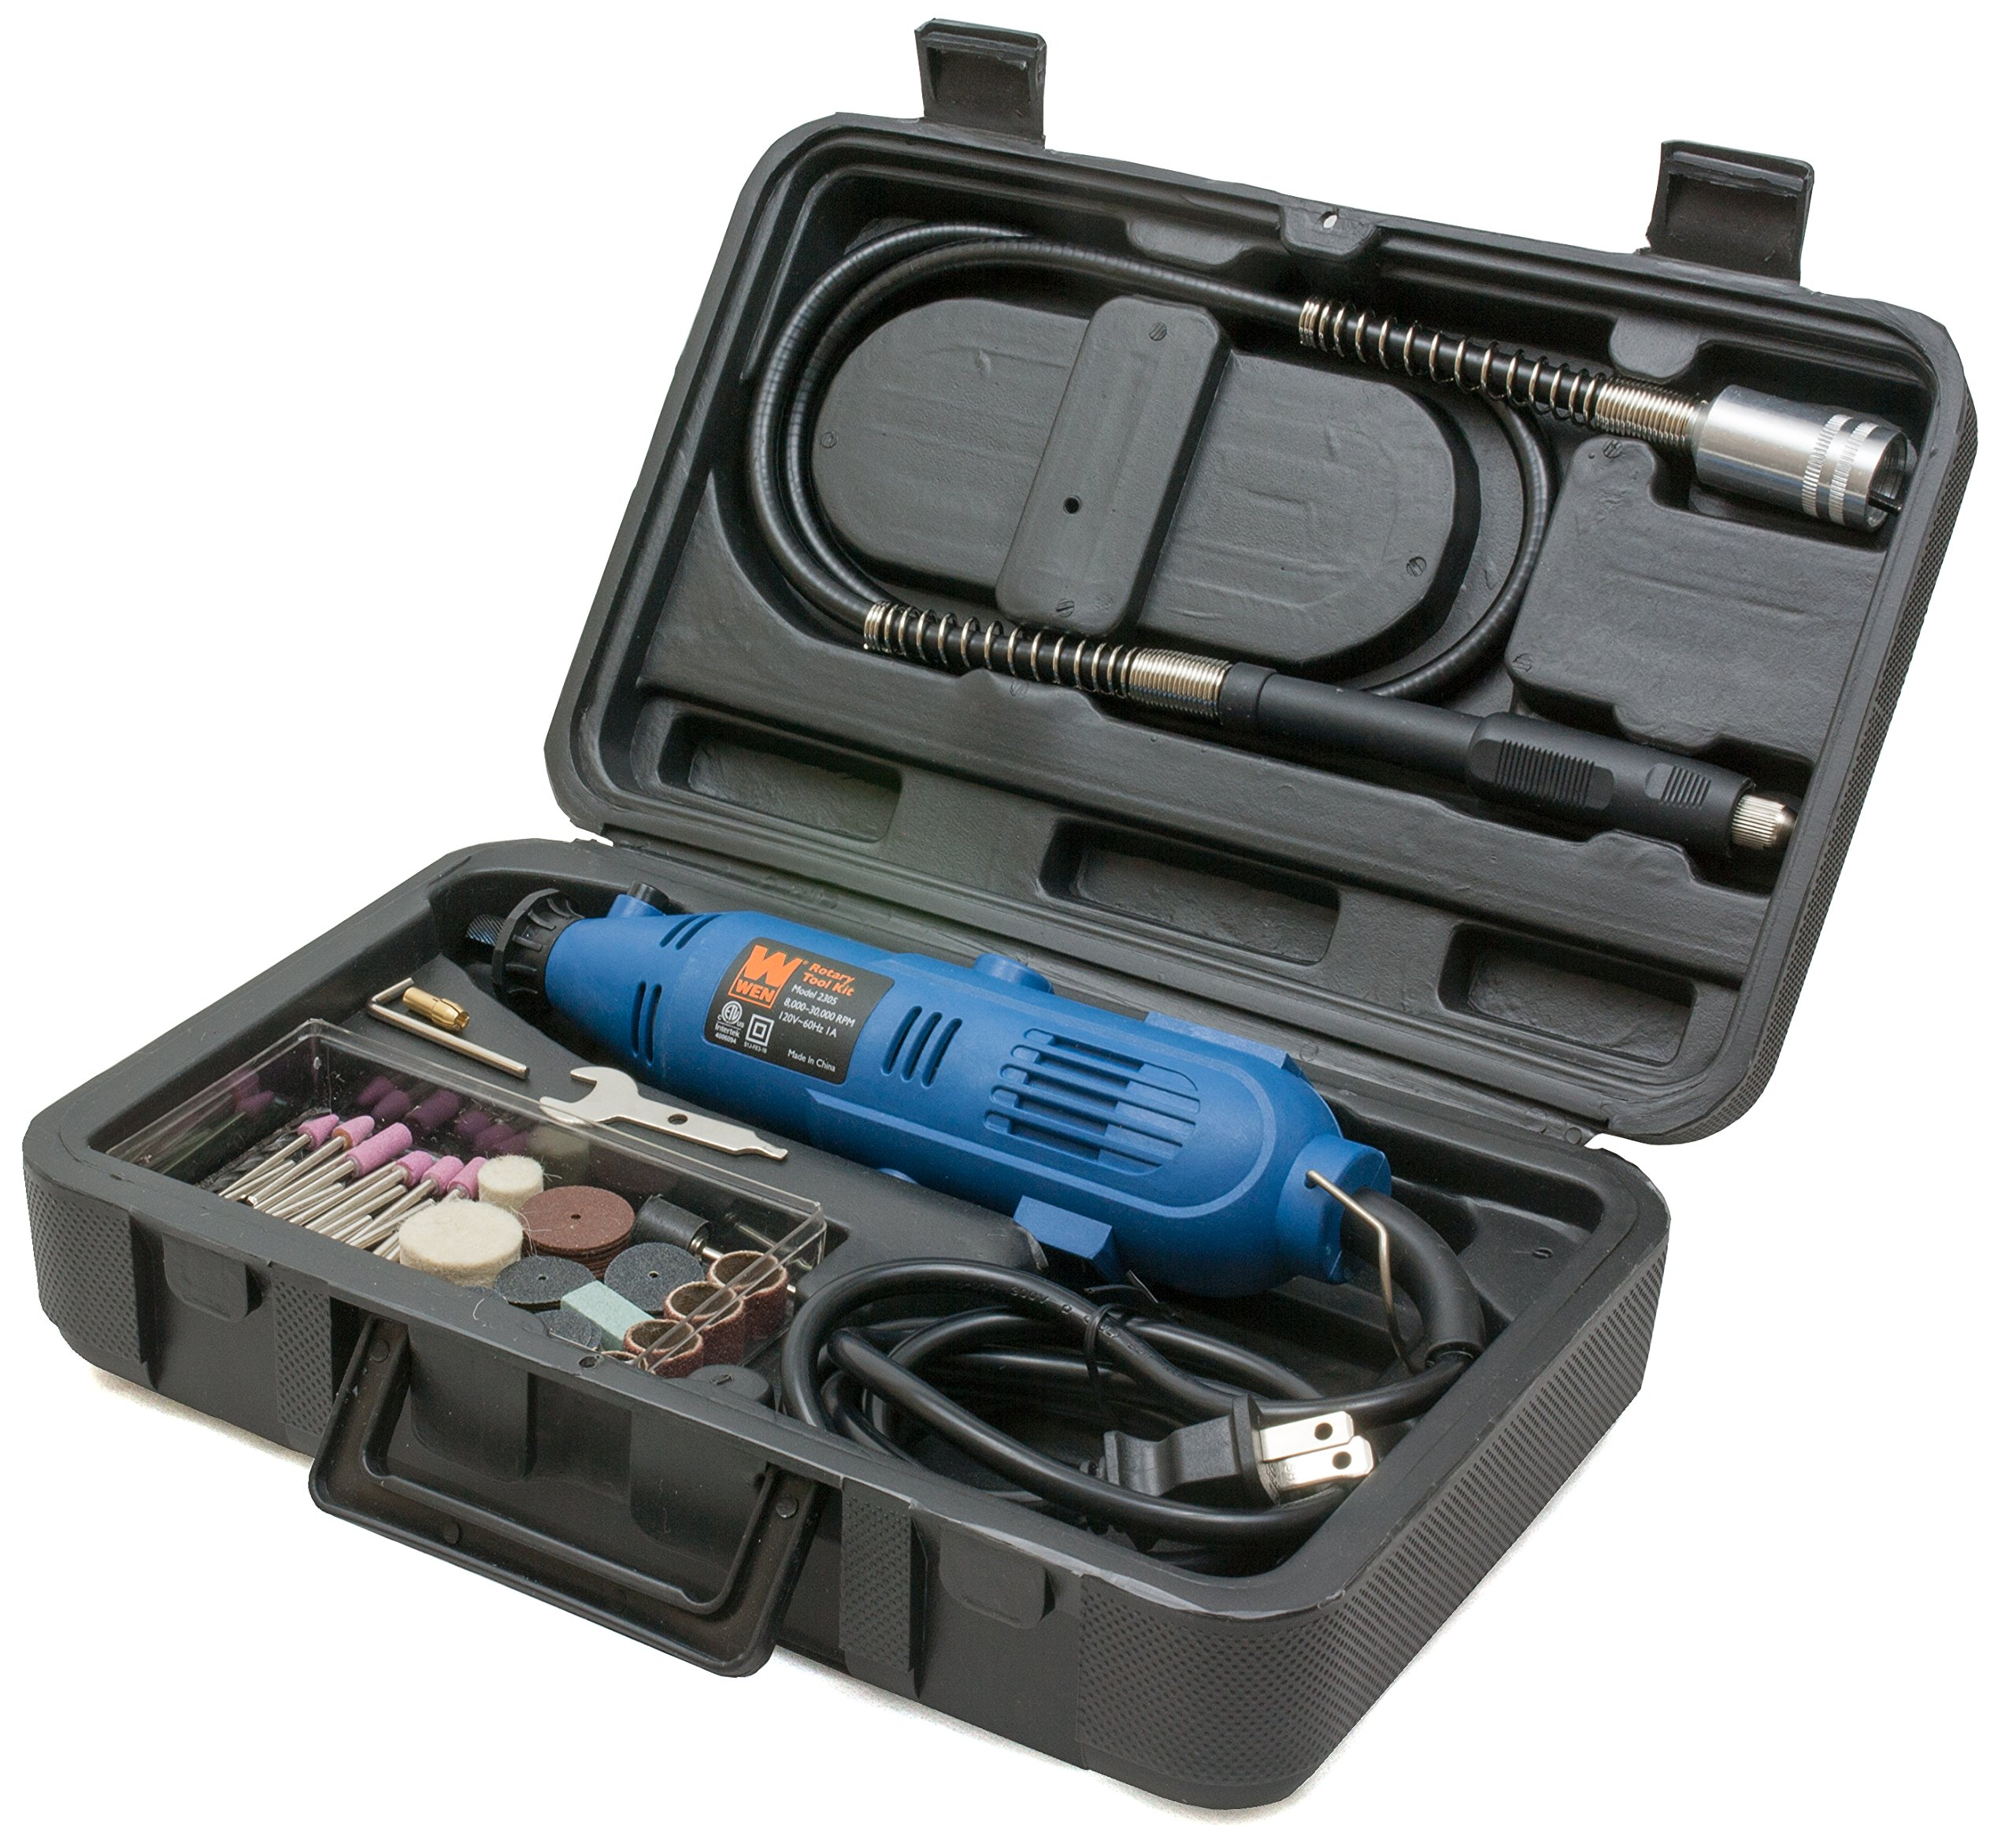 WEN 2305 Rotary Tool Kit with Flex Shaft by WEN (Image #2)